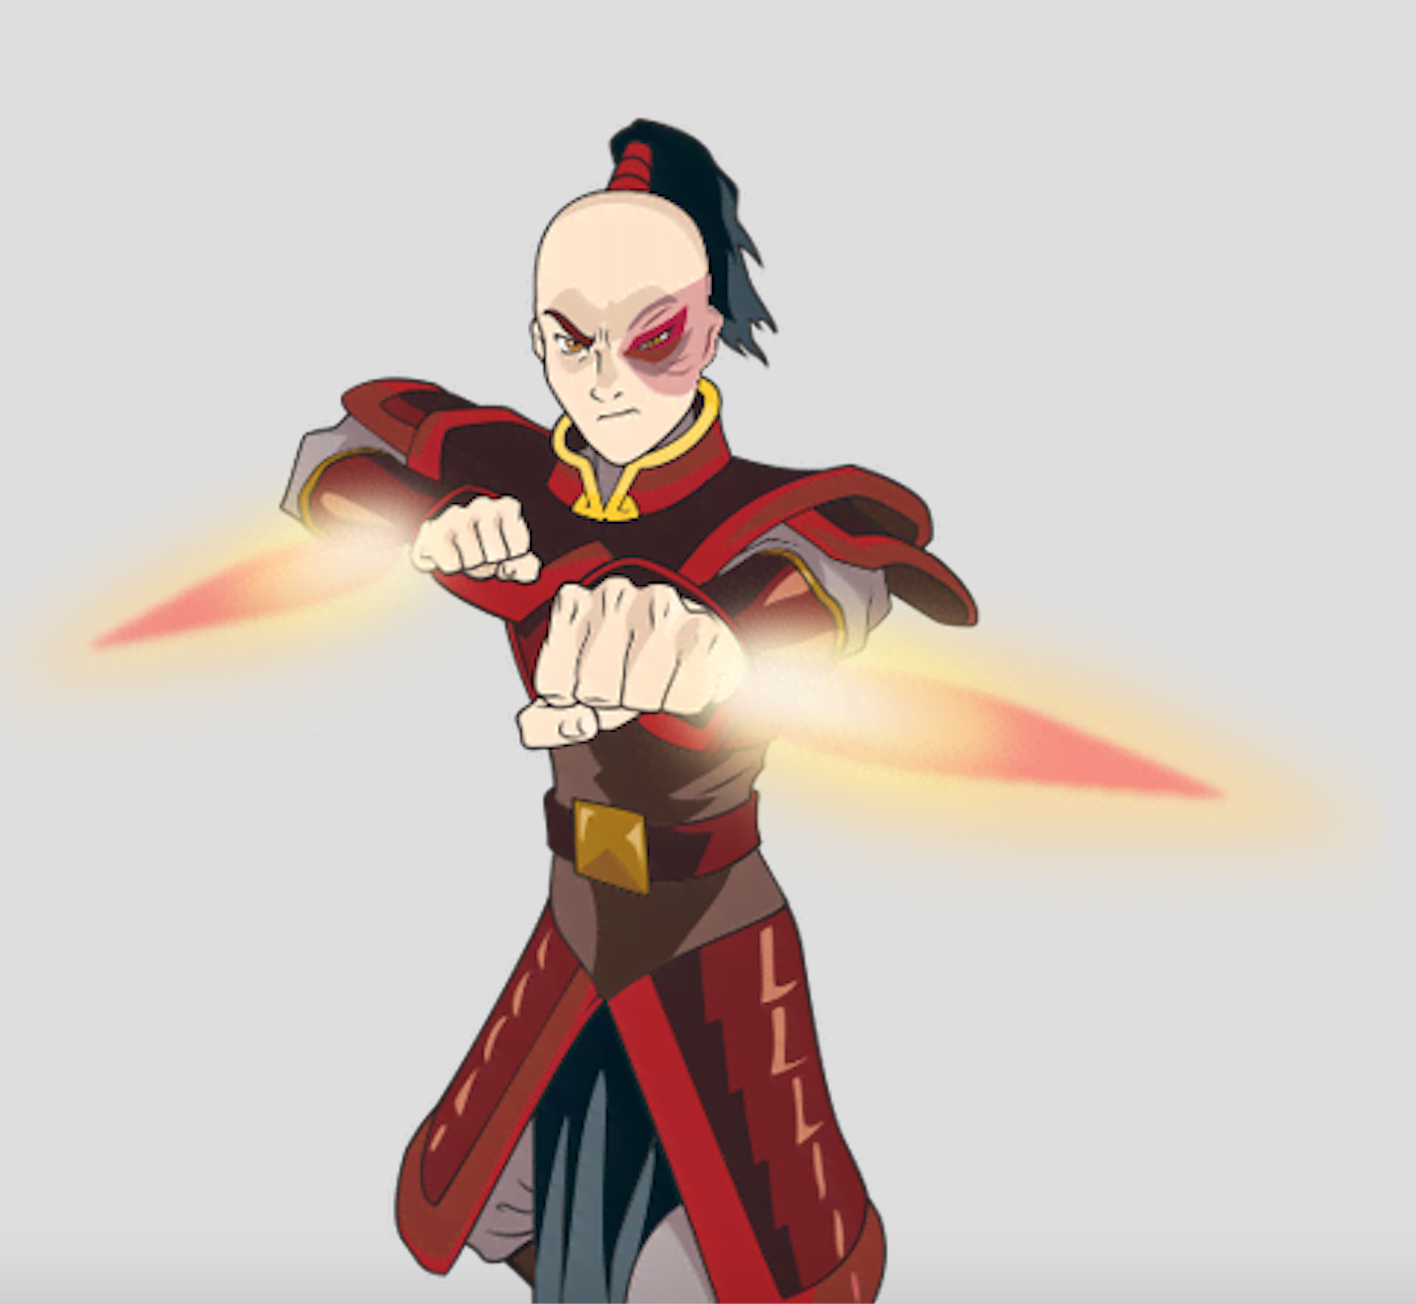 Prince Zuko And His Fire Flamed Daggers From Avatar The Last Airbender